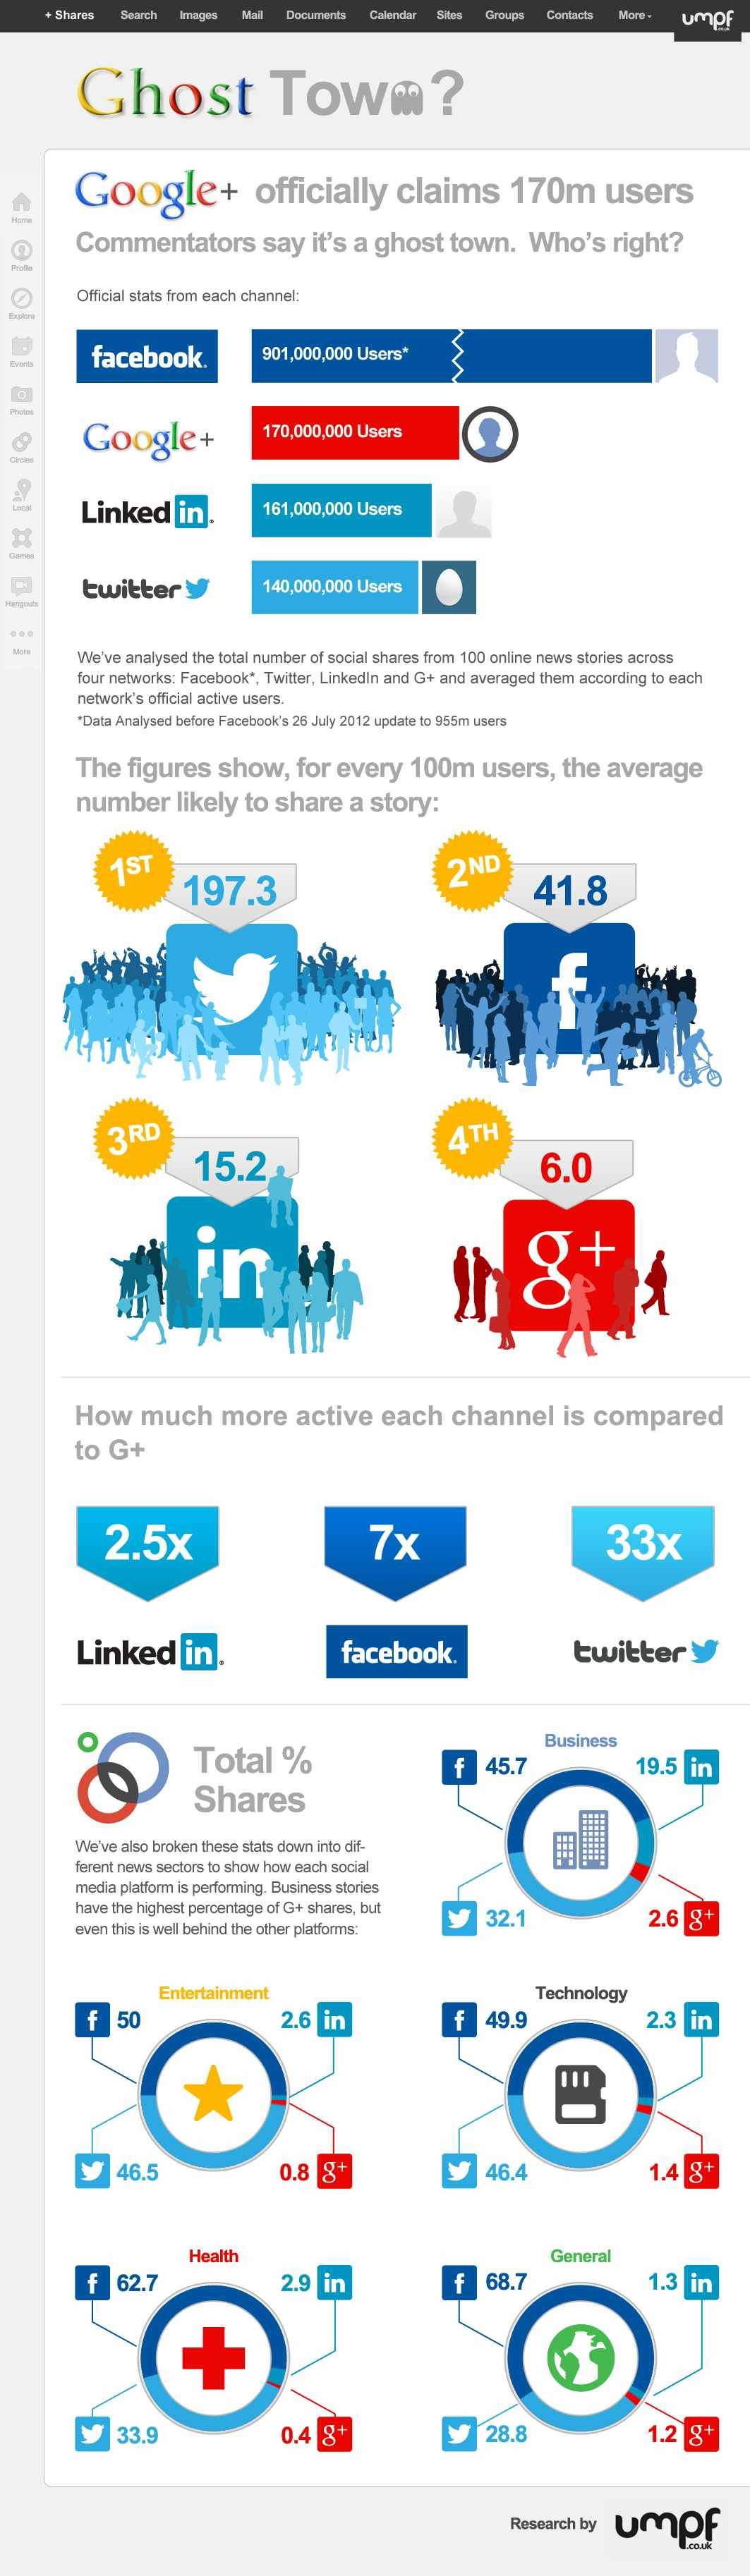 Google-Plus-Ghost-Town-Social-Shares-versus-Twitter-LinkedIn-Facebook-Umpf